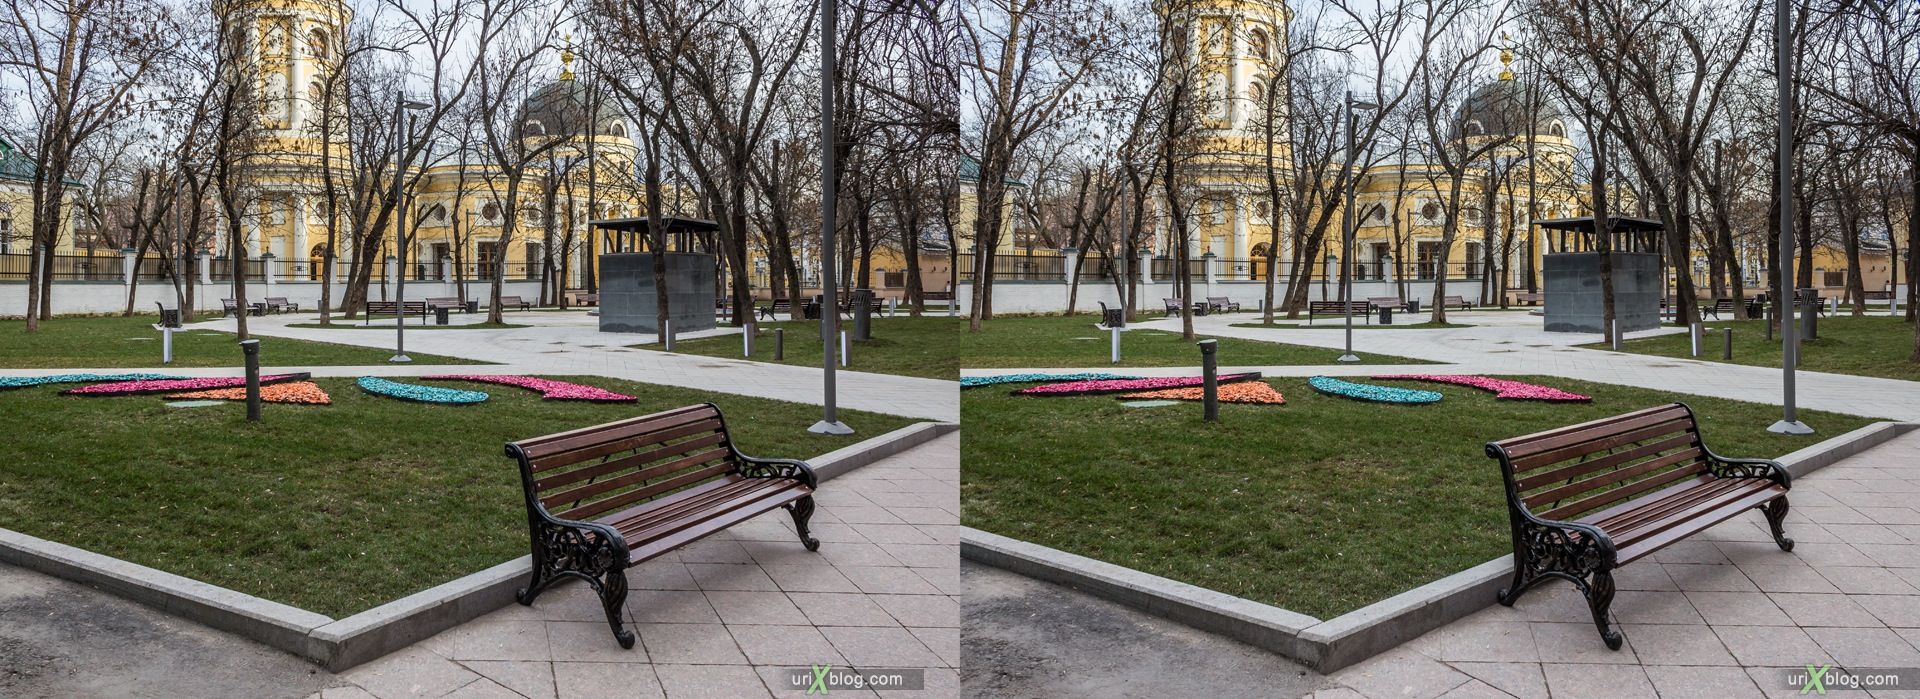 2013, Moscow, Russia, Ordynsky dead end, metro, street, new pedestrian zone, 3D, stereo pair, cross-eyed, crossview, cross view stereo pair, stereoscopic